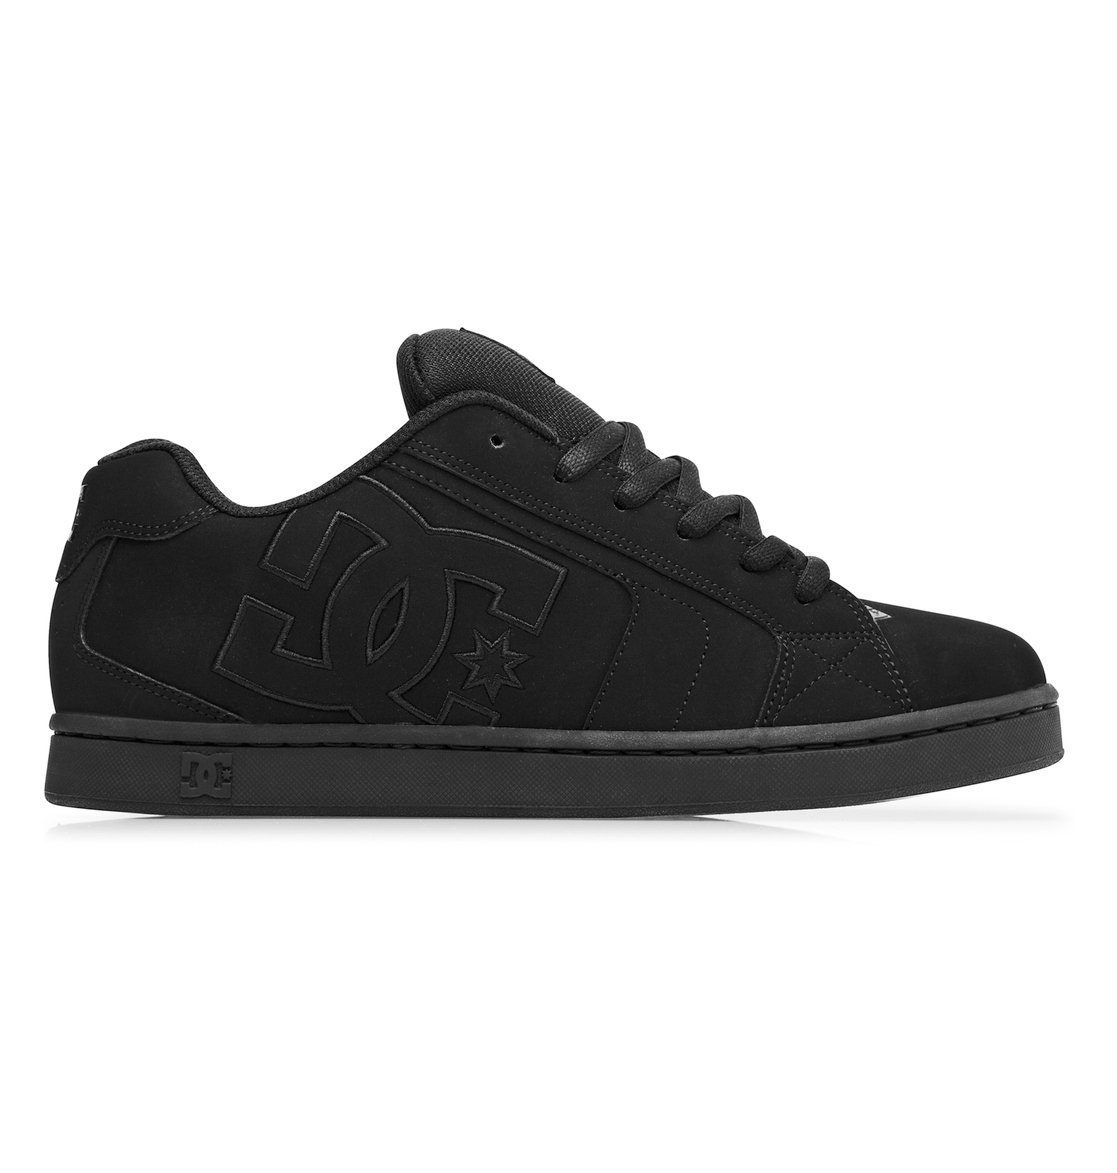 Chaussures Trase Leather Black Armor - DC Shoes 09rt9tMBHP